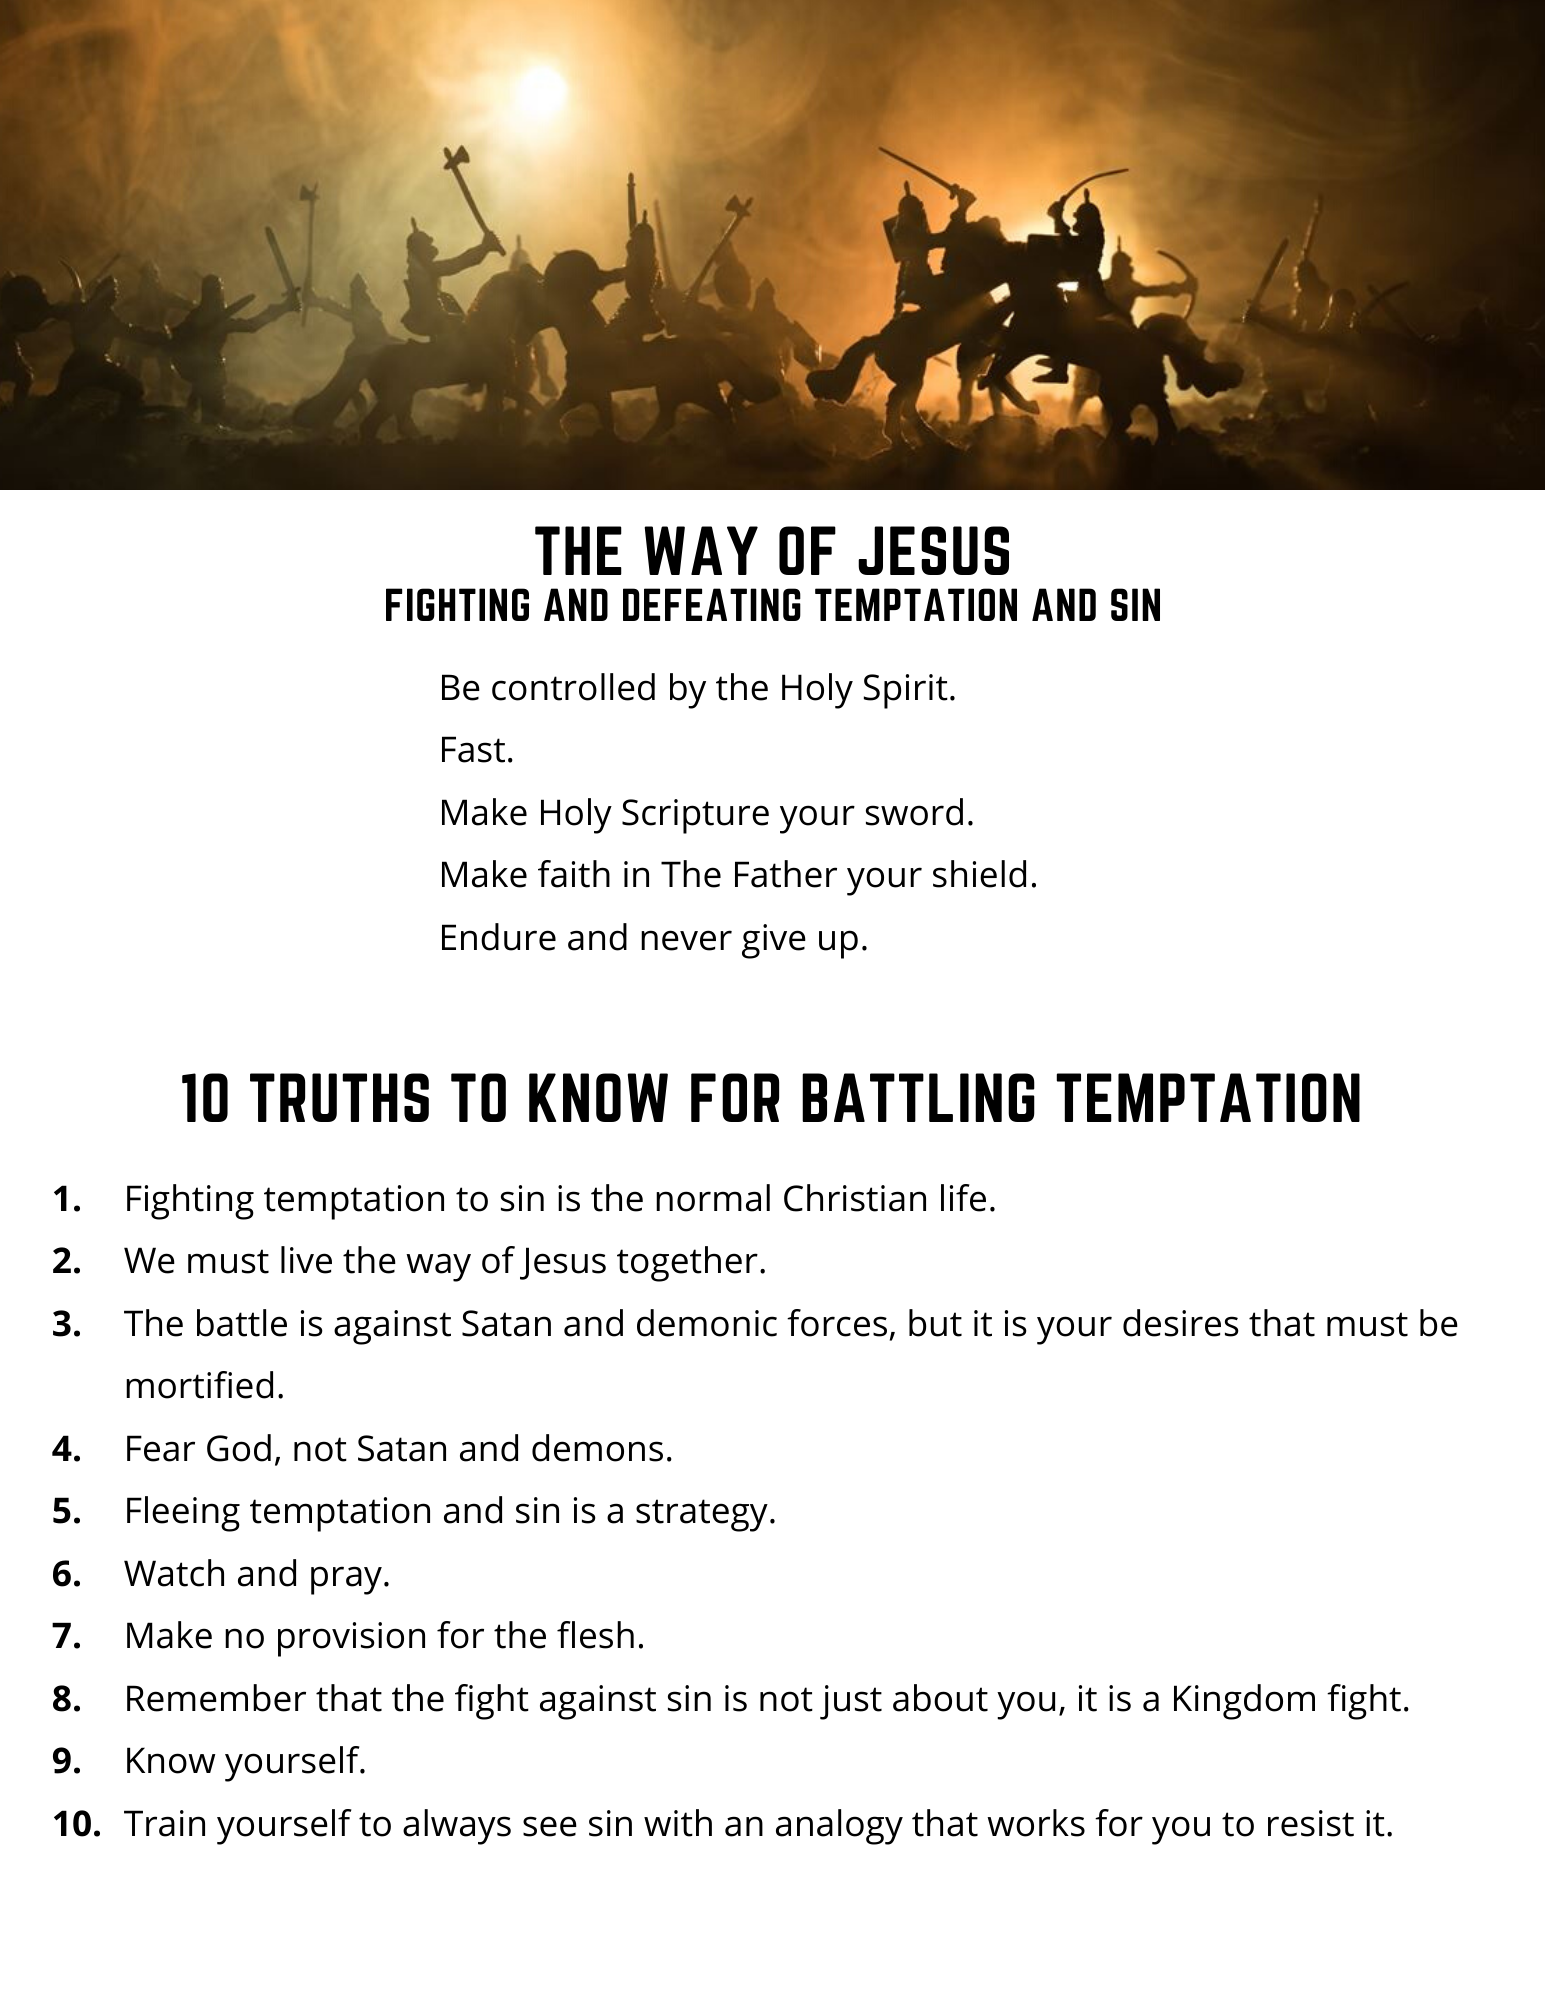 10 Truths to Know for Battling Temptation